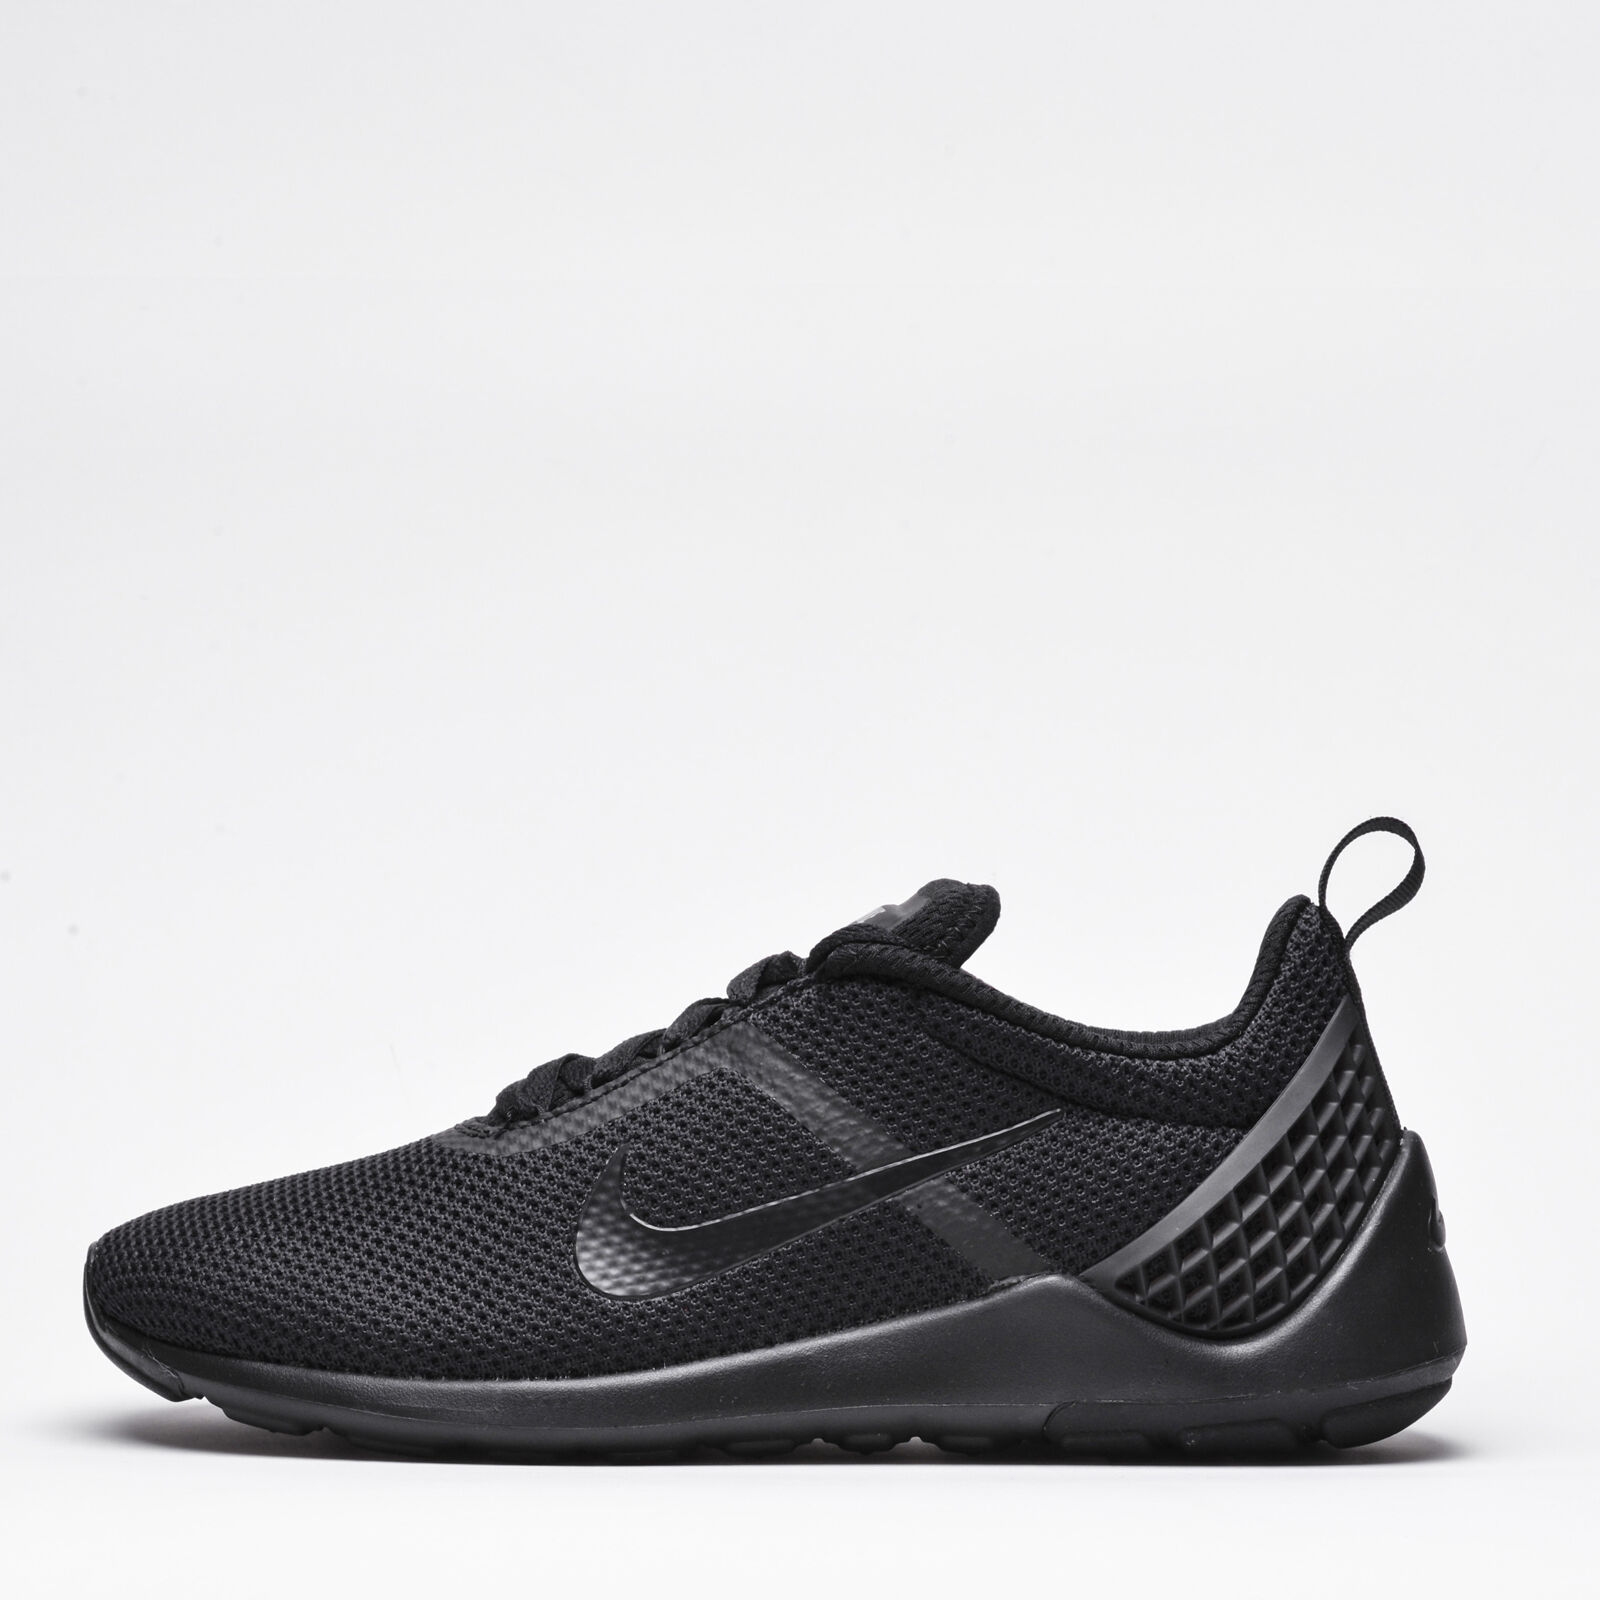 Nike Lunarestoa 2 Essential Mens Trainers Triple Black Trainers shoes Sneakers